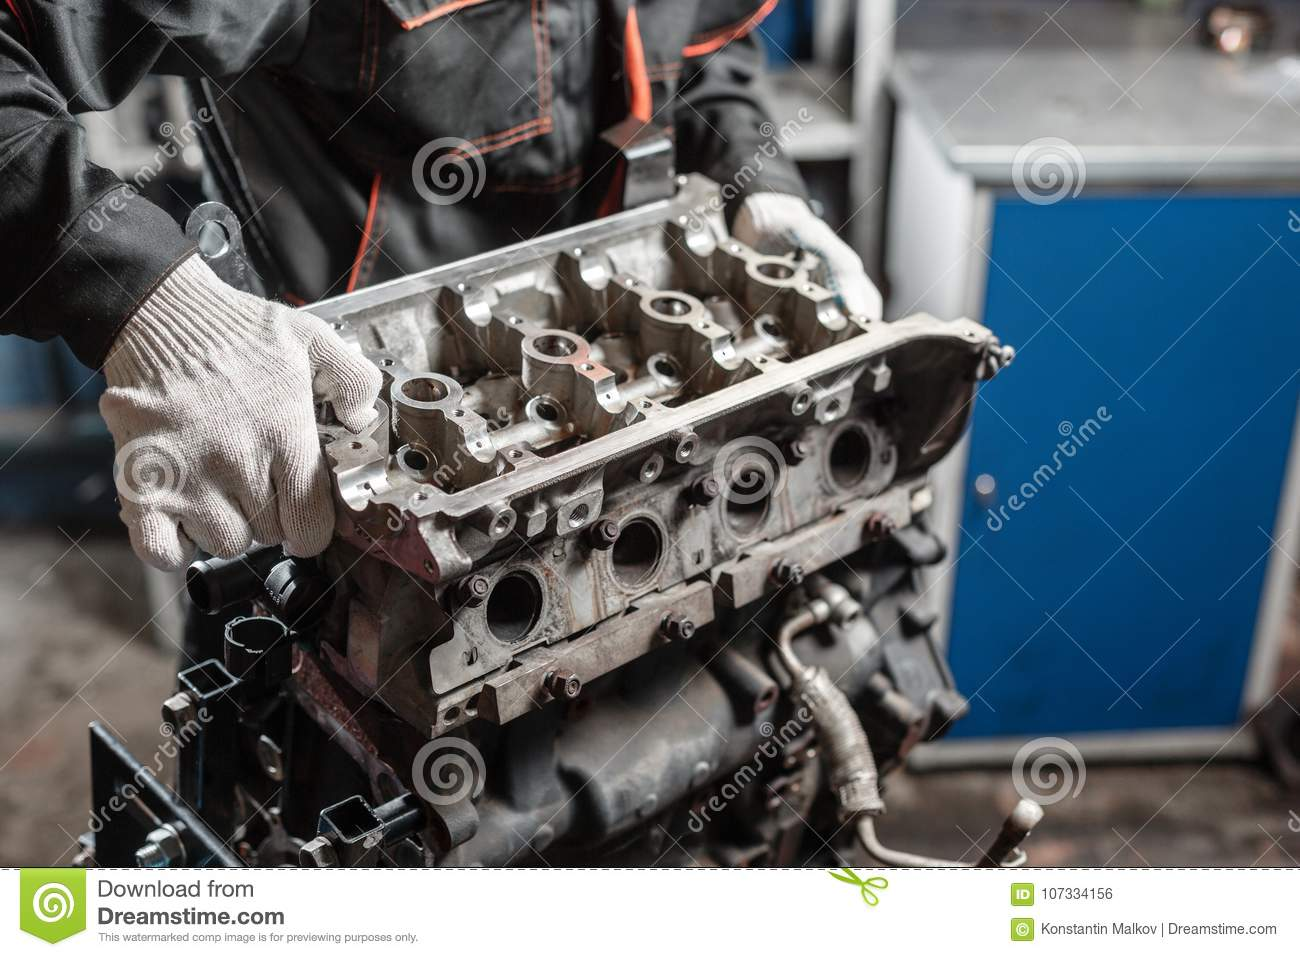 The mechanic disassemble block engine vehicle. Engine on a repair stand  with piston and connecting